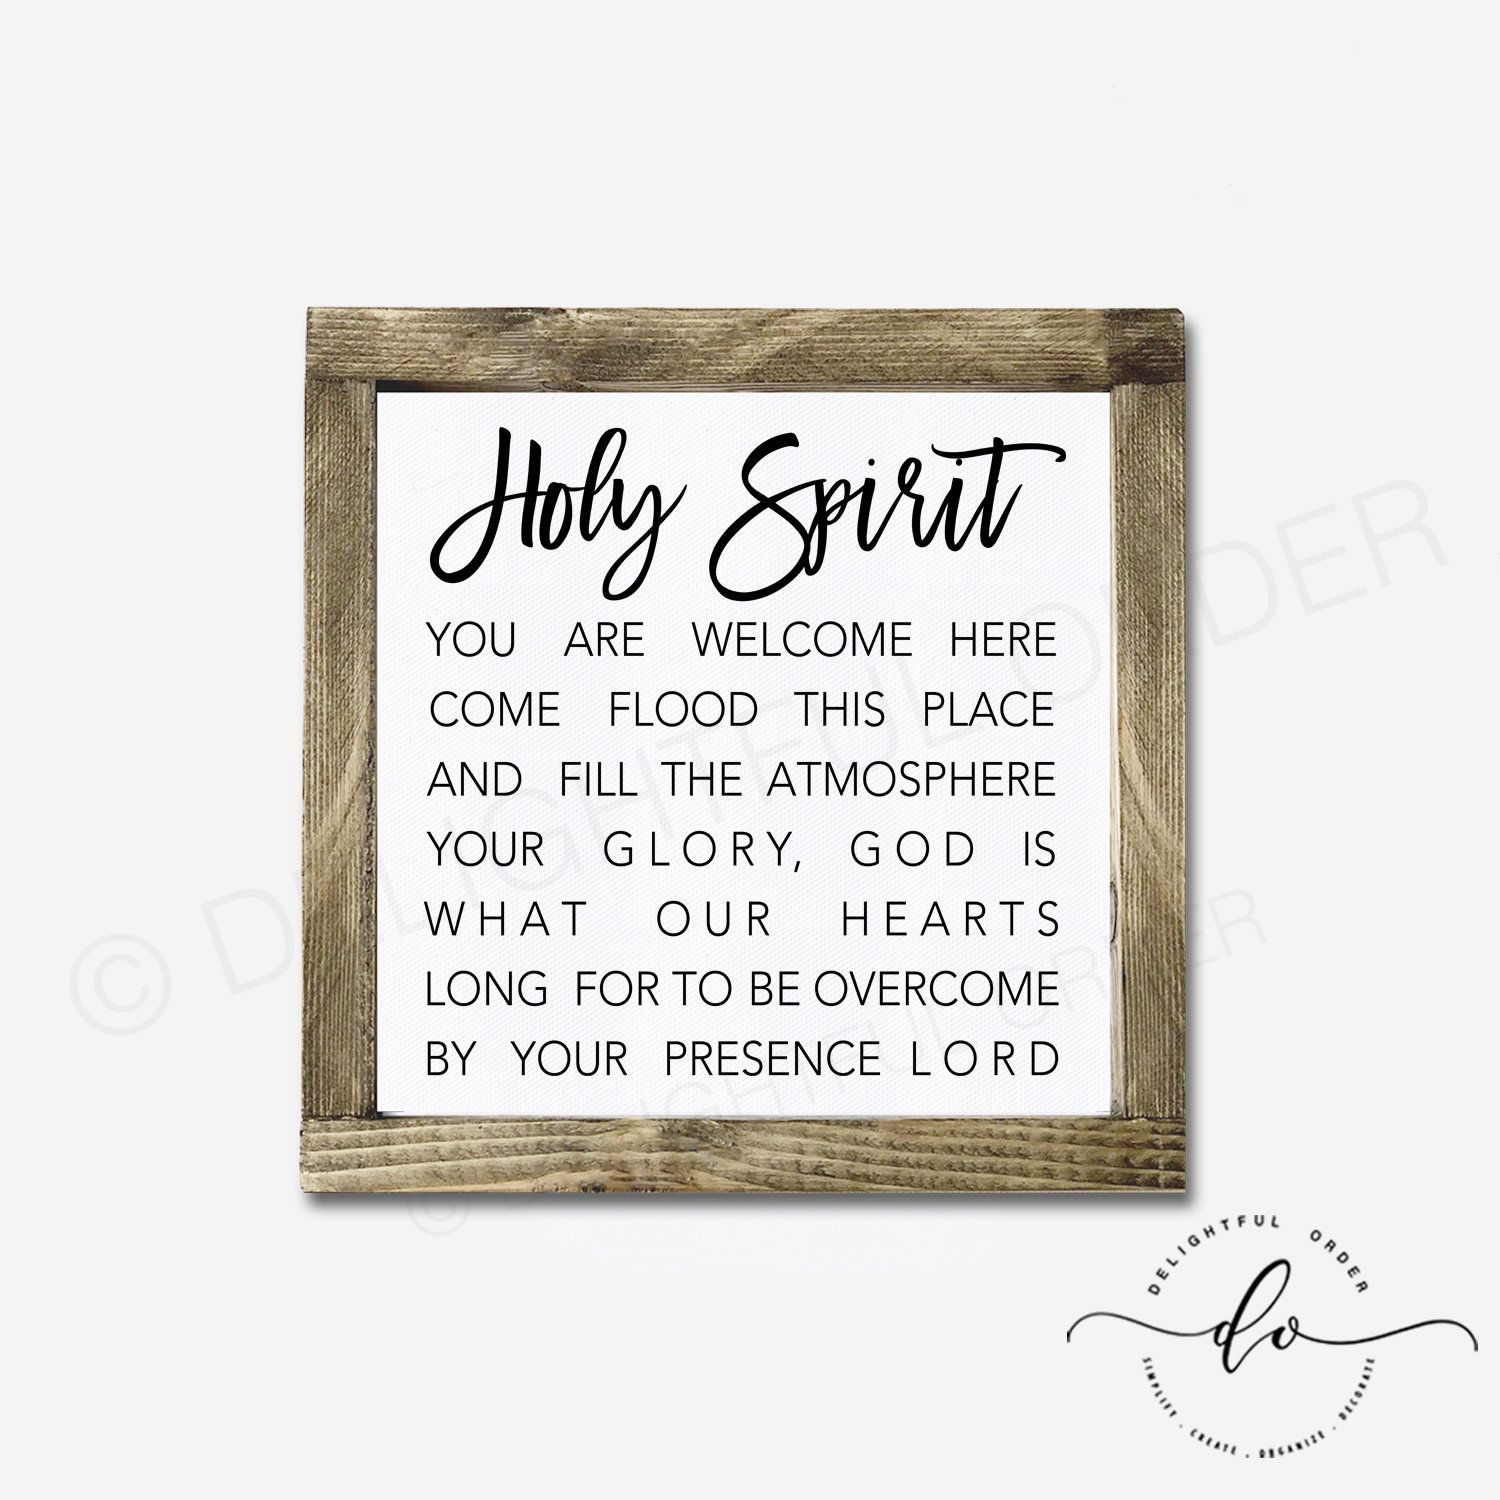 Holy spirit you are here wood framed printed sign